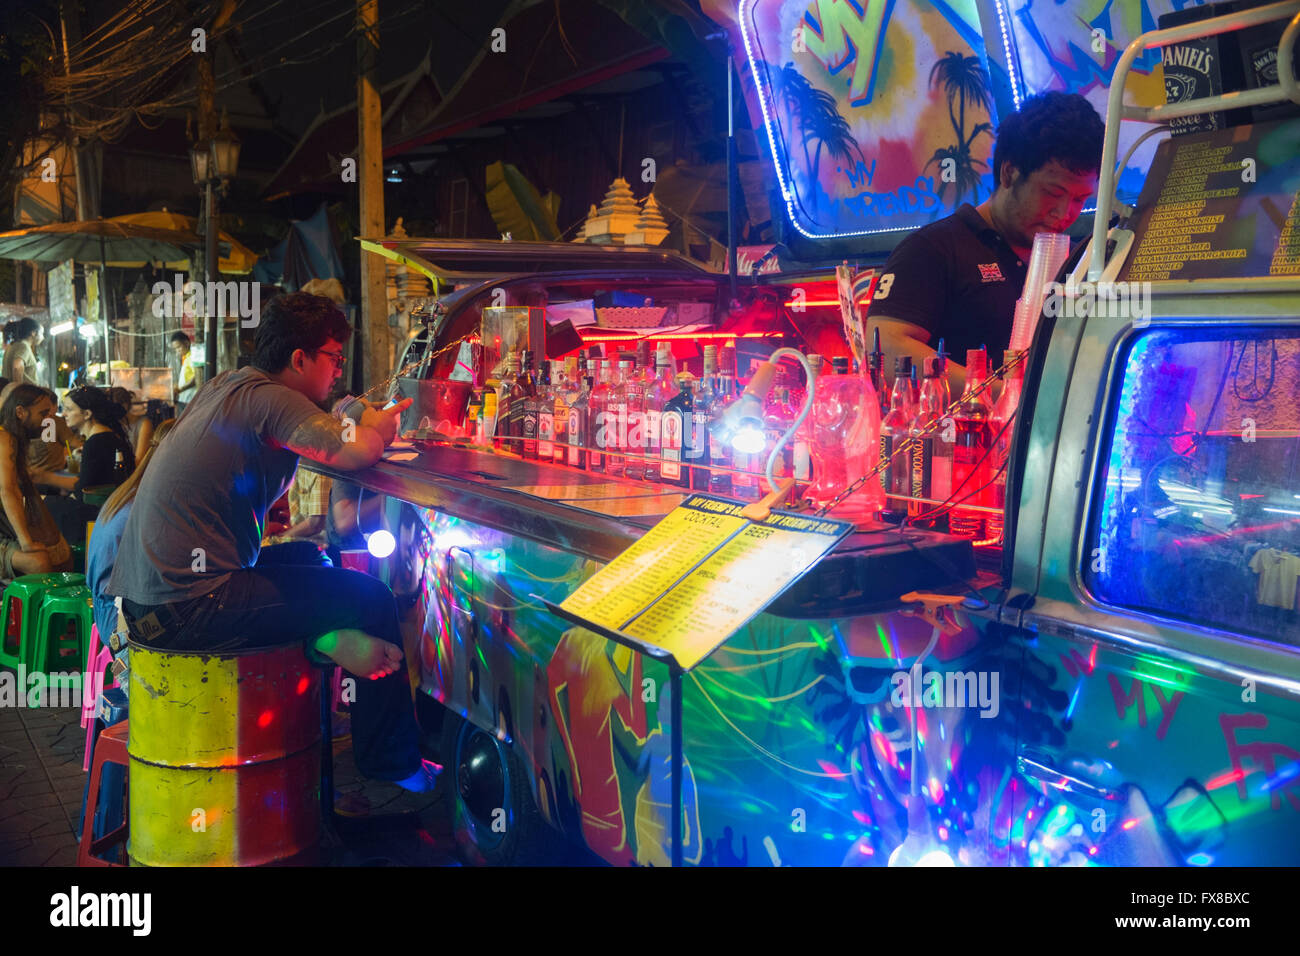 Mobile bar banglamphu bangkok thailand stock photo for Thailand mobel